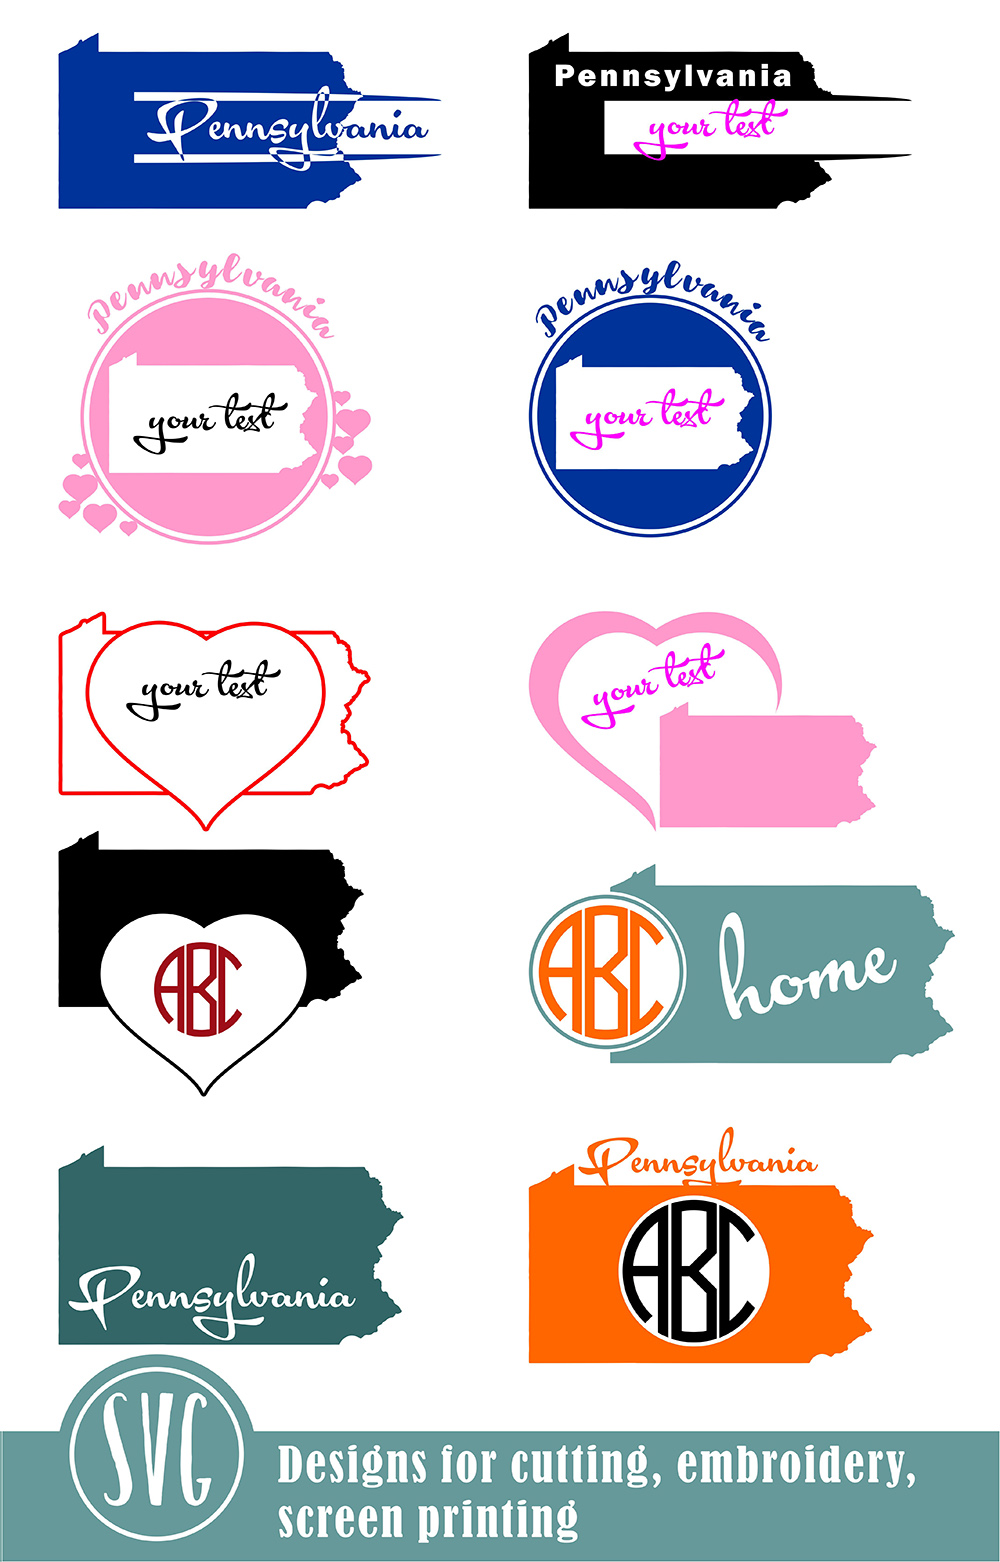 Pennsylvania Monograms SVG, JPG, PNG, DWG, CDR, EPS, AI example image 2